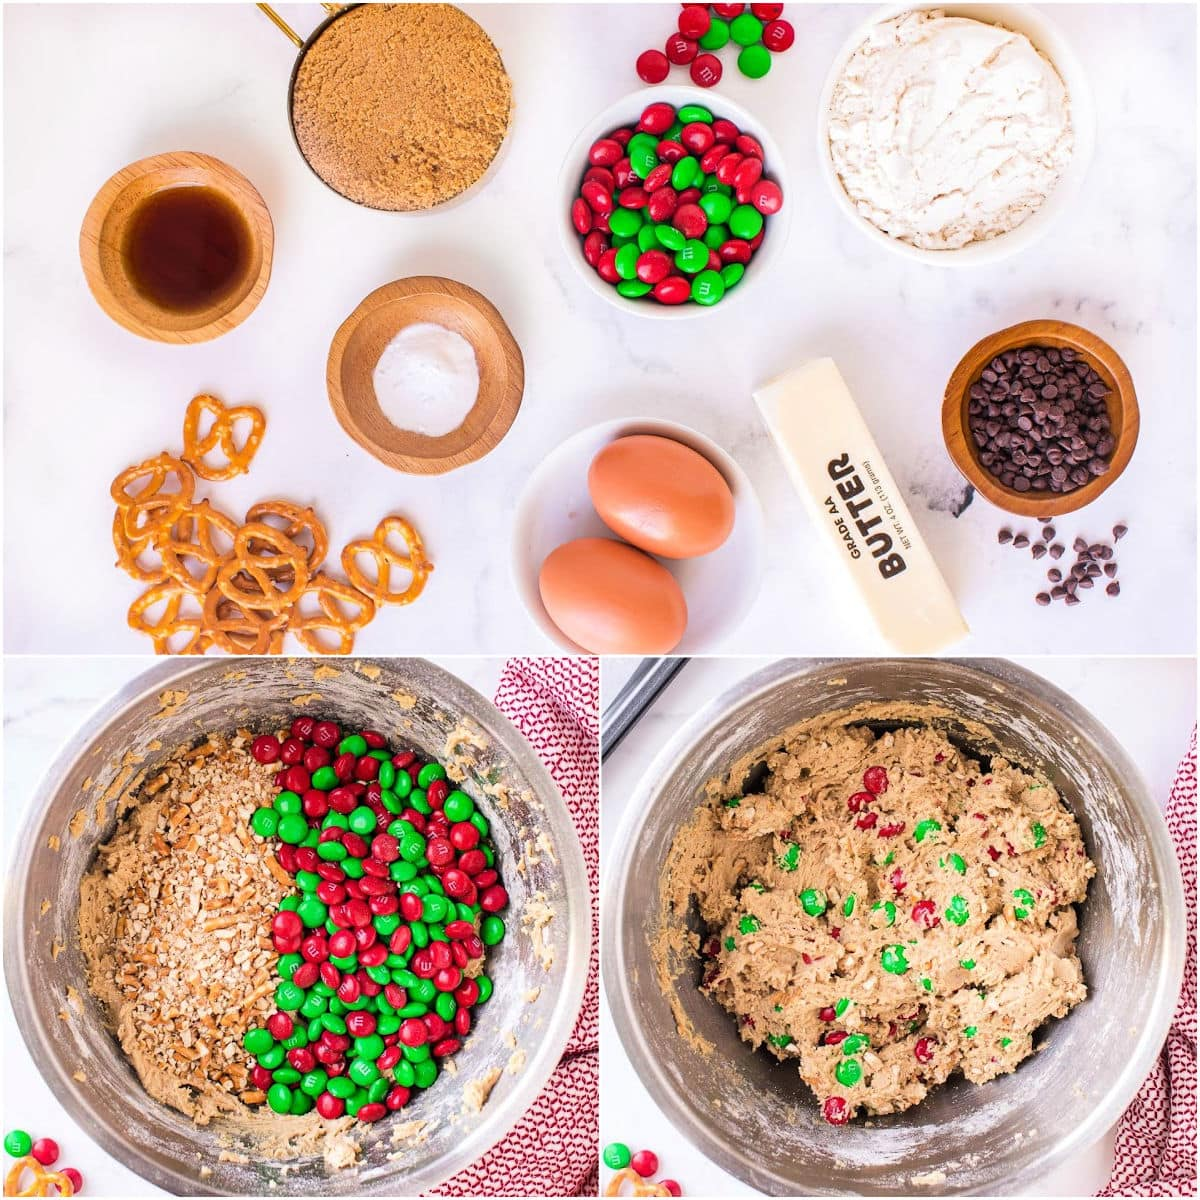 reindeer pretzel cookie bars ingredients laid out on white surface and two images showing dough being mixed together in this three image collage